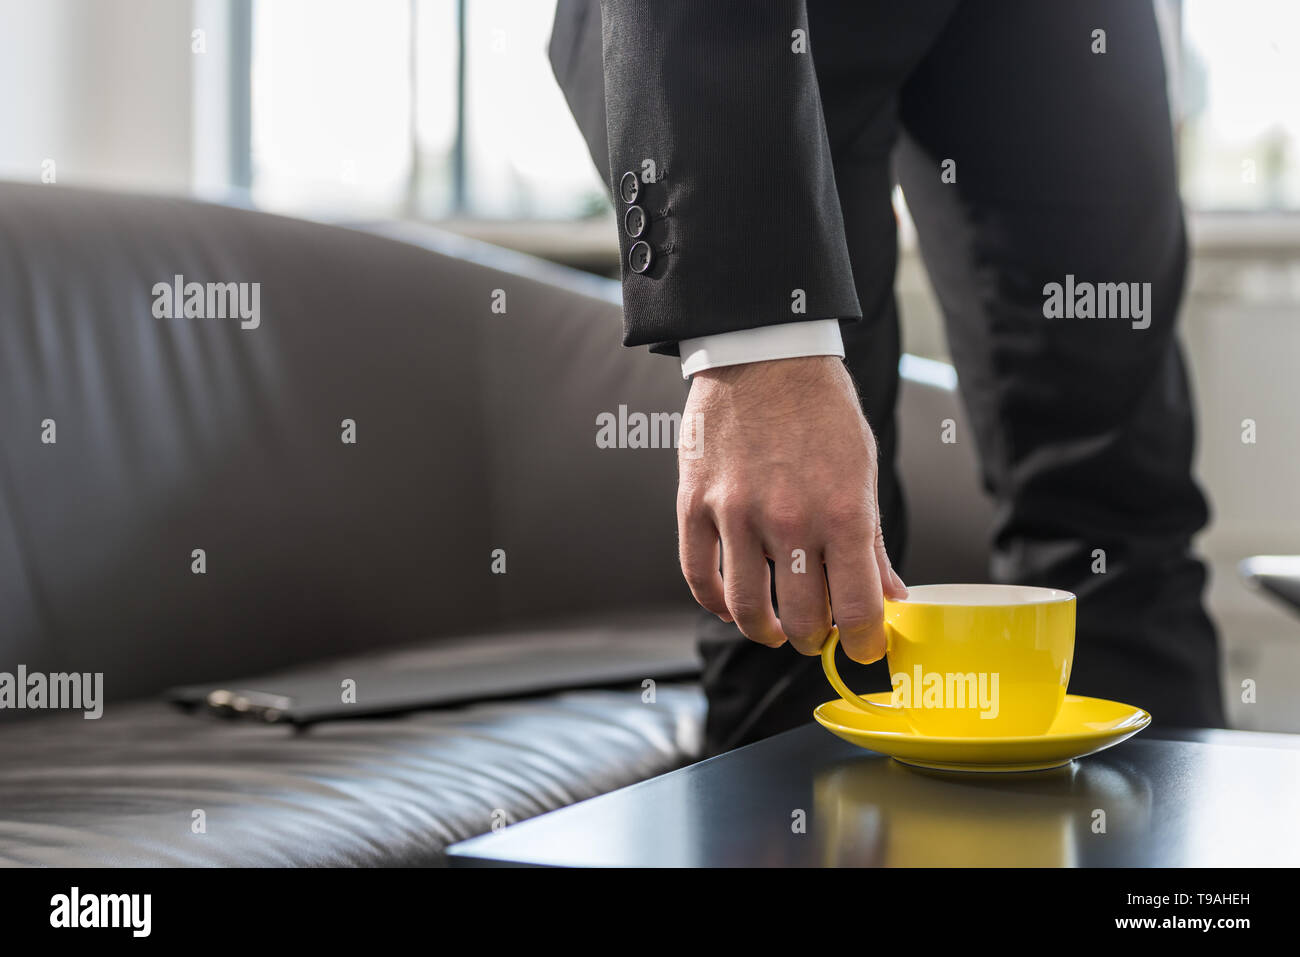 Businessman on a break in his office leaning down toward coffee table to pick up coffee mug as he rest his documents on the couch. - Stock Image